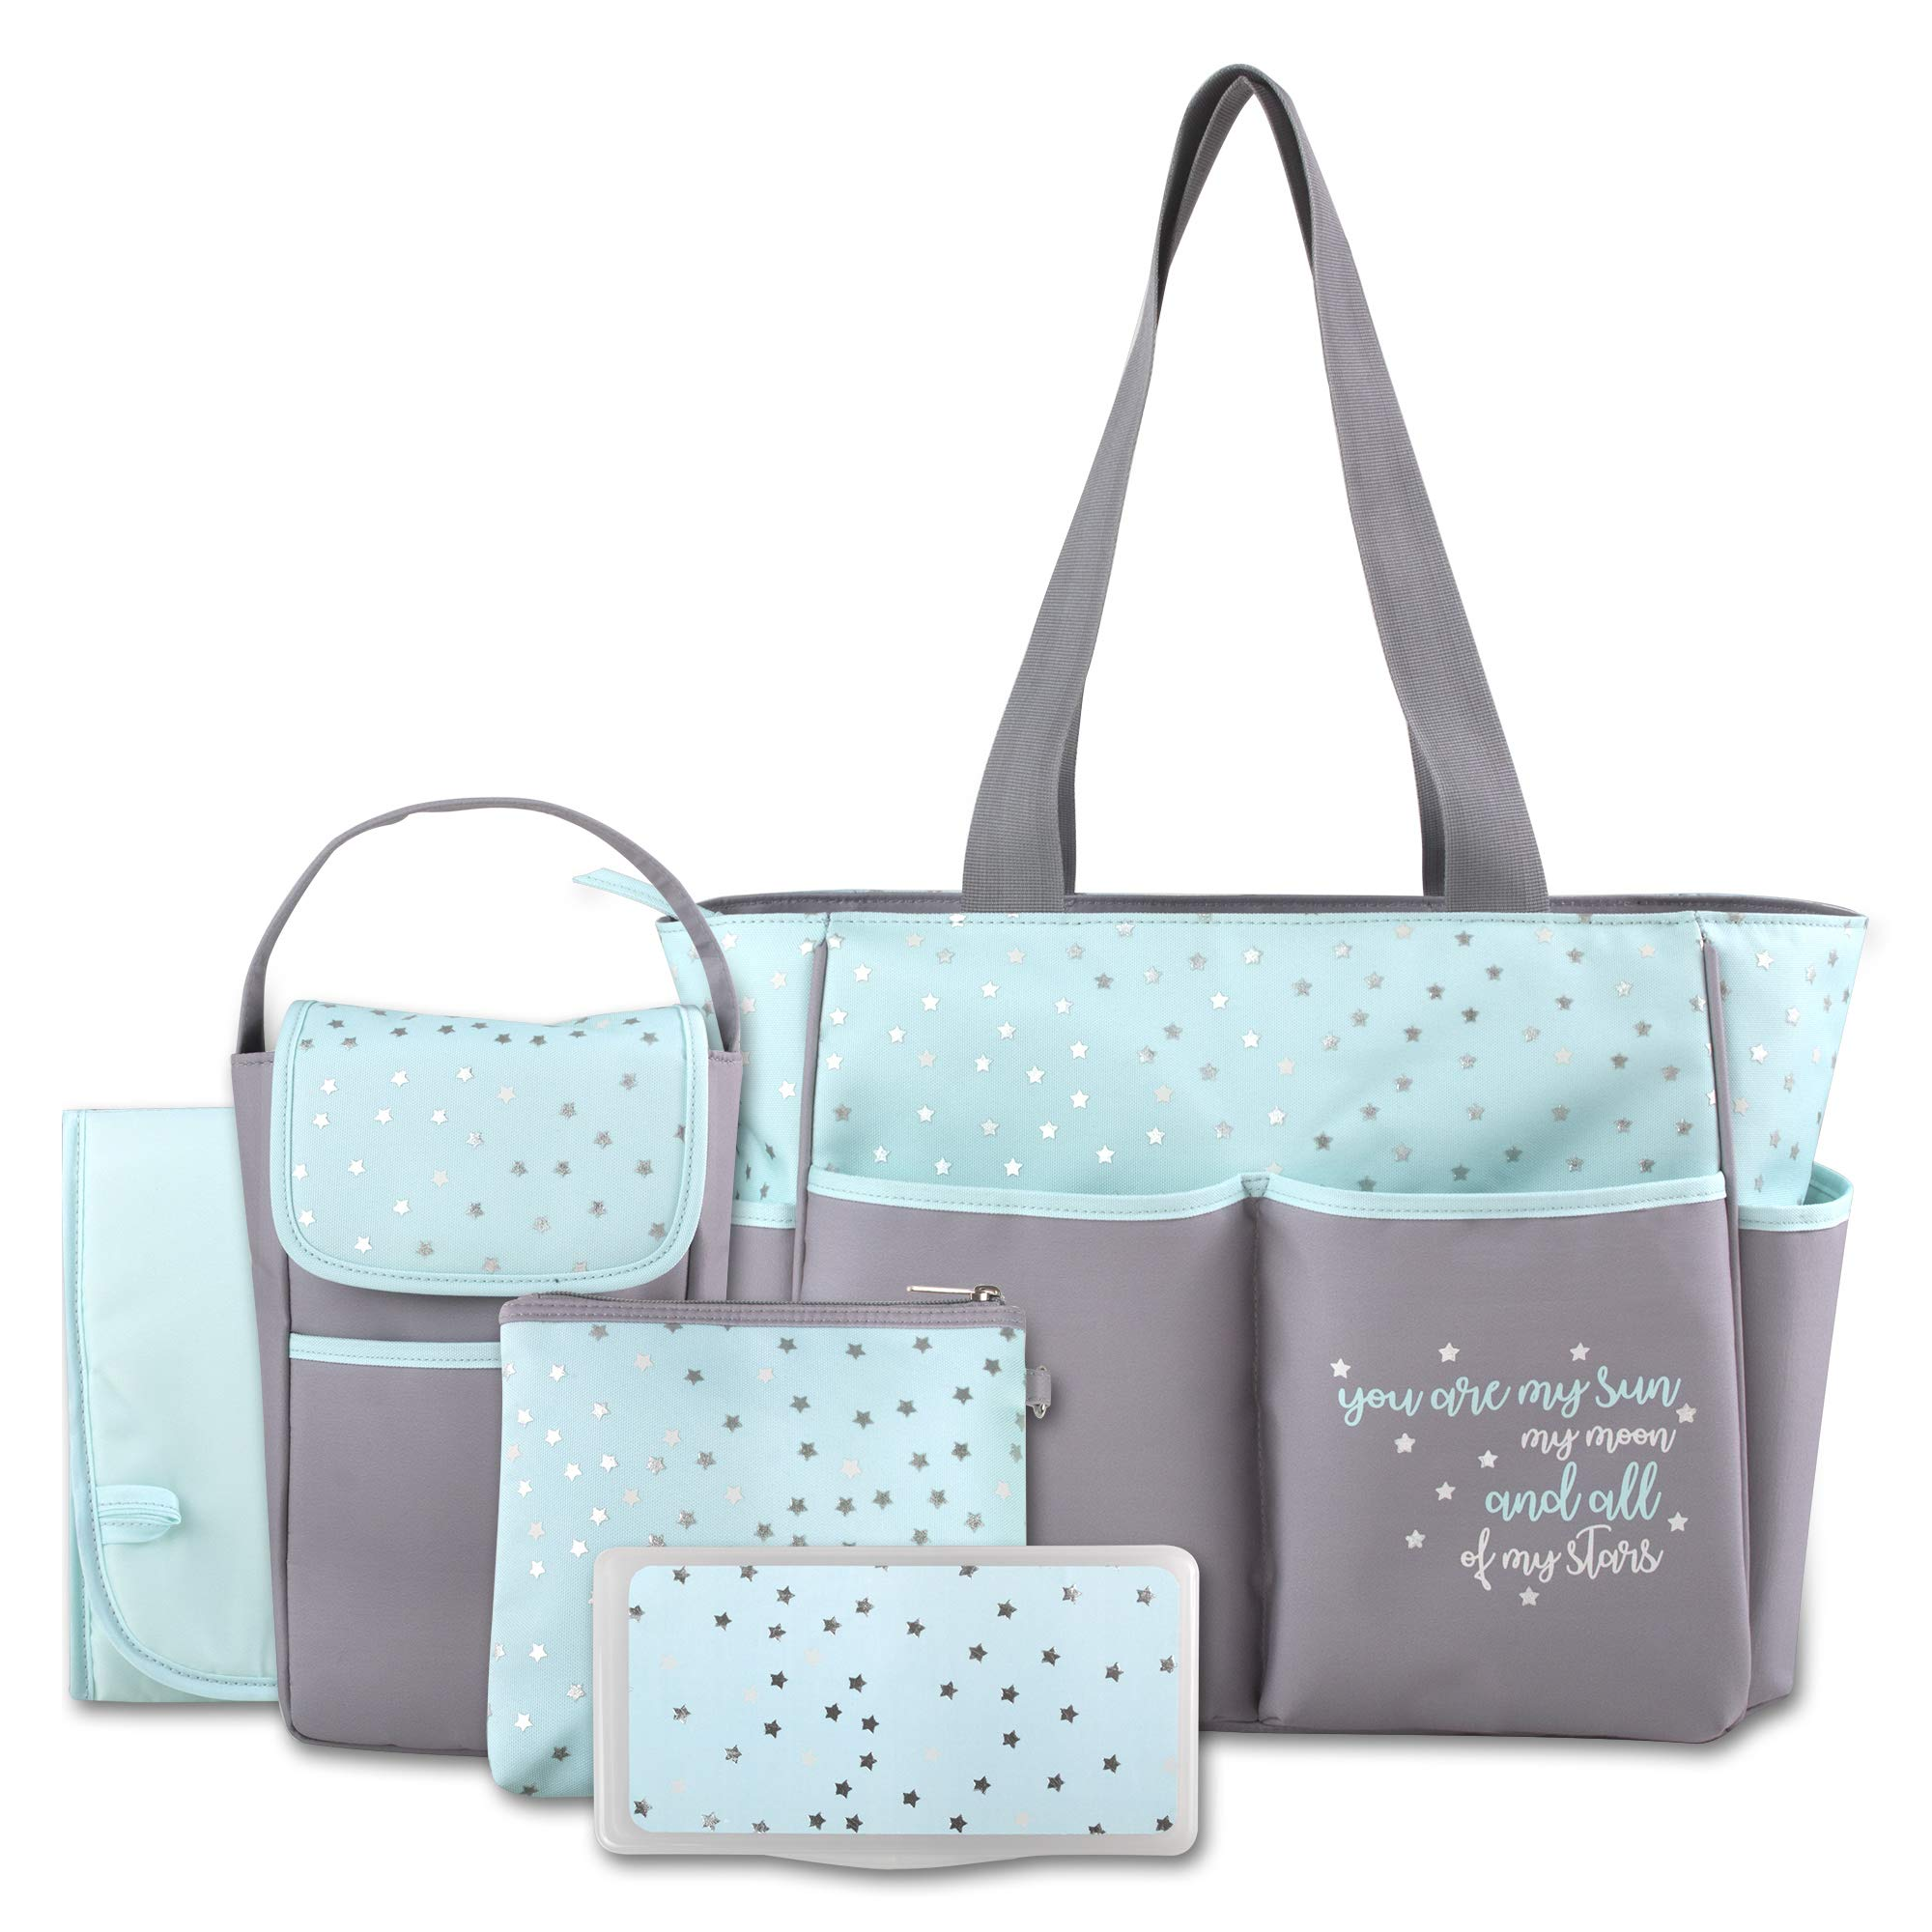 Diaper Bag Tote 5 Piece Set with Sun, Moon, and Stars, Wipes Pocket, Dirty Diaper Pouch, & Changing Pad by Tender Kisses